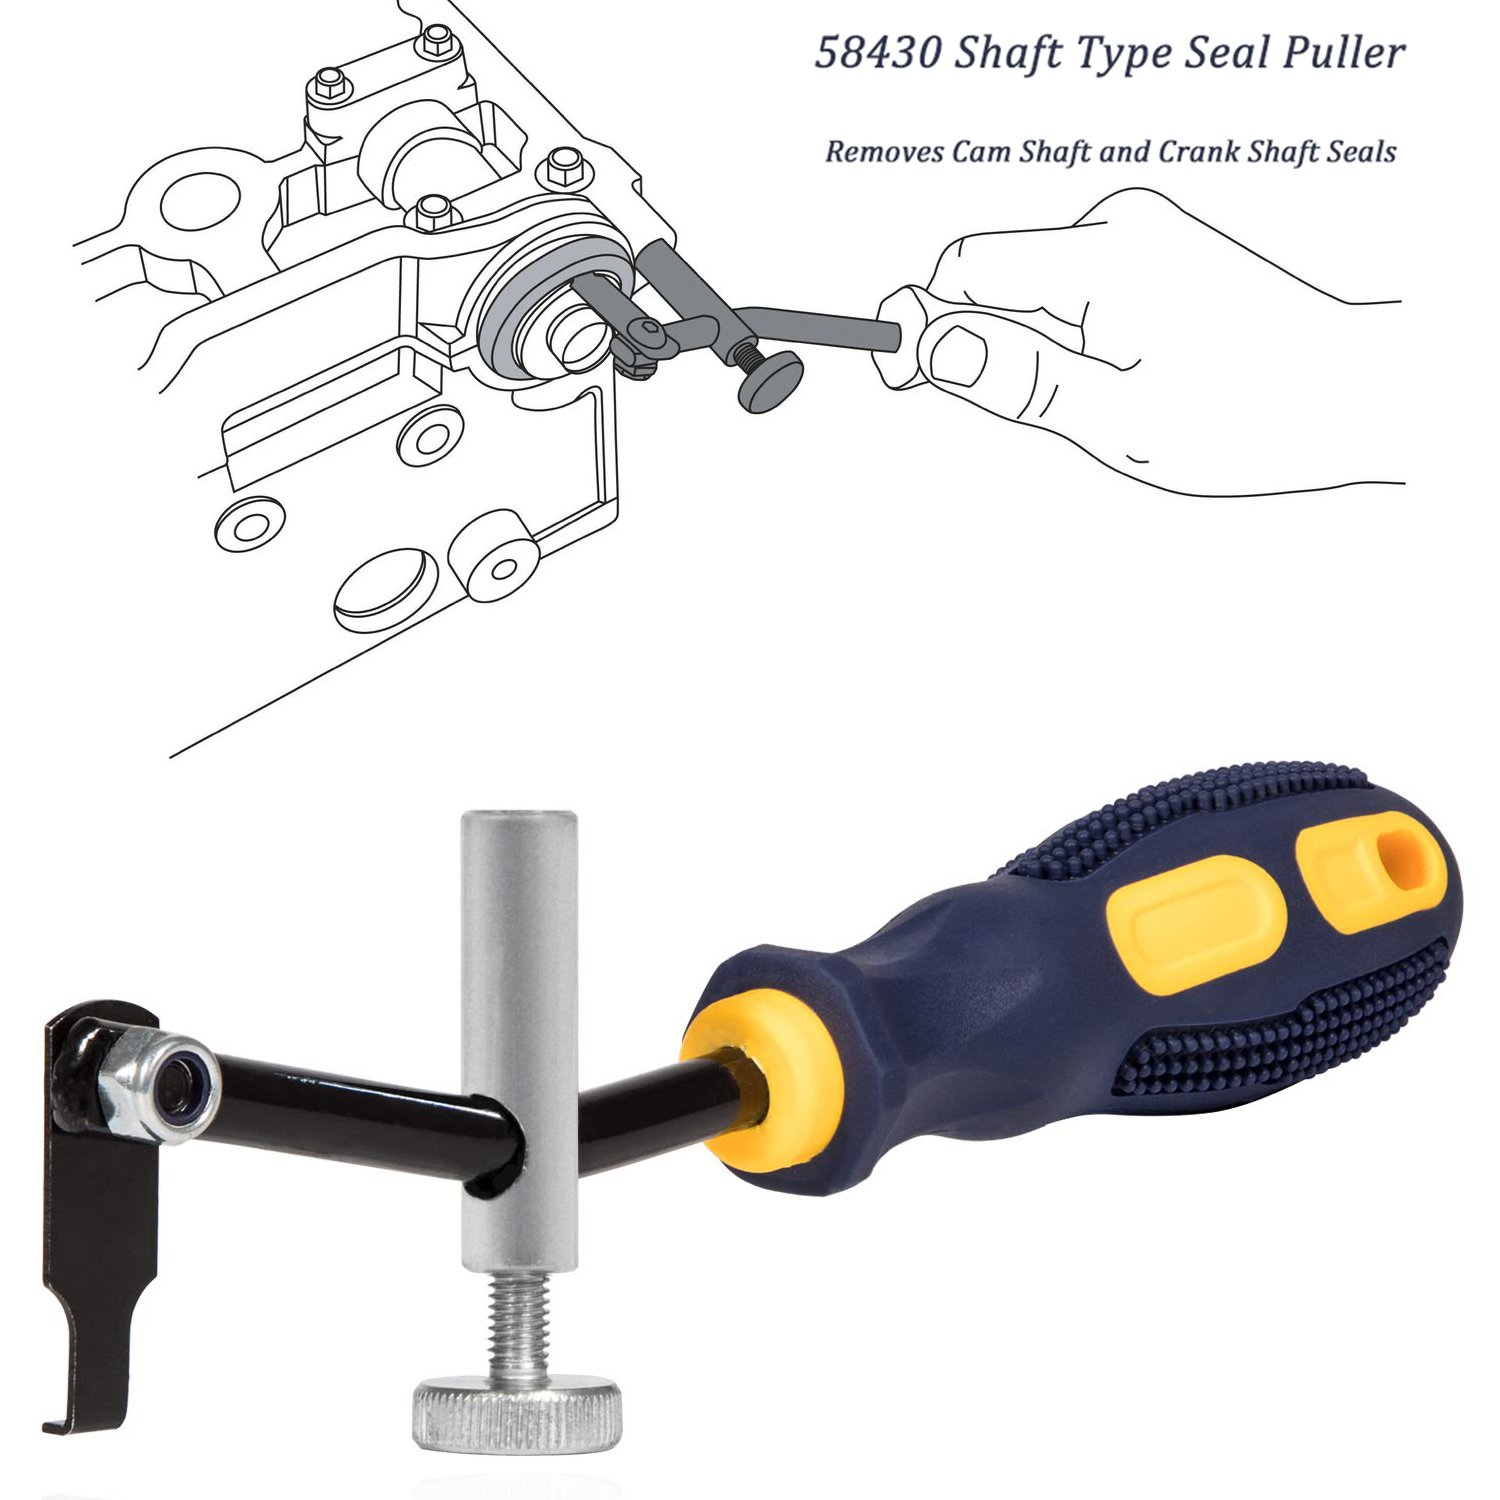 58430 Shaft Seal Puller Tool Automotive Tools Supplies Remover Motorcycle Auto